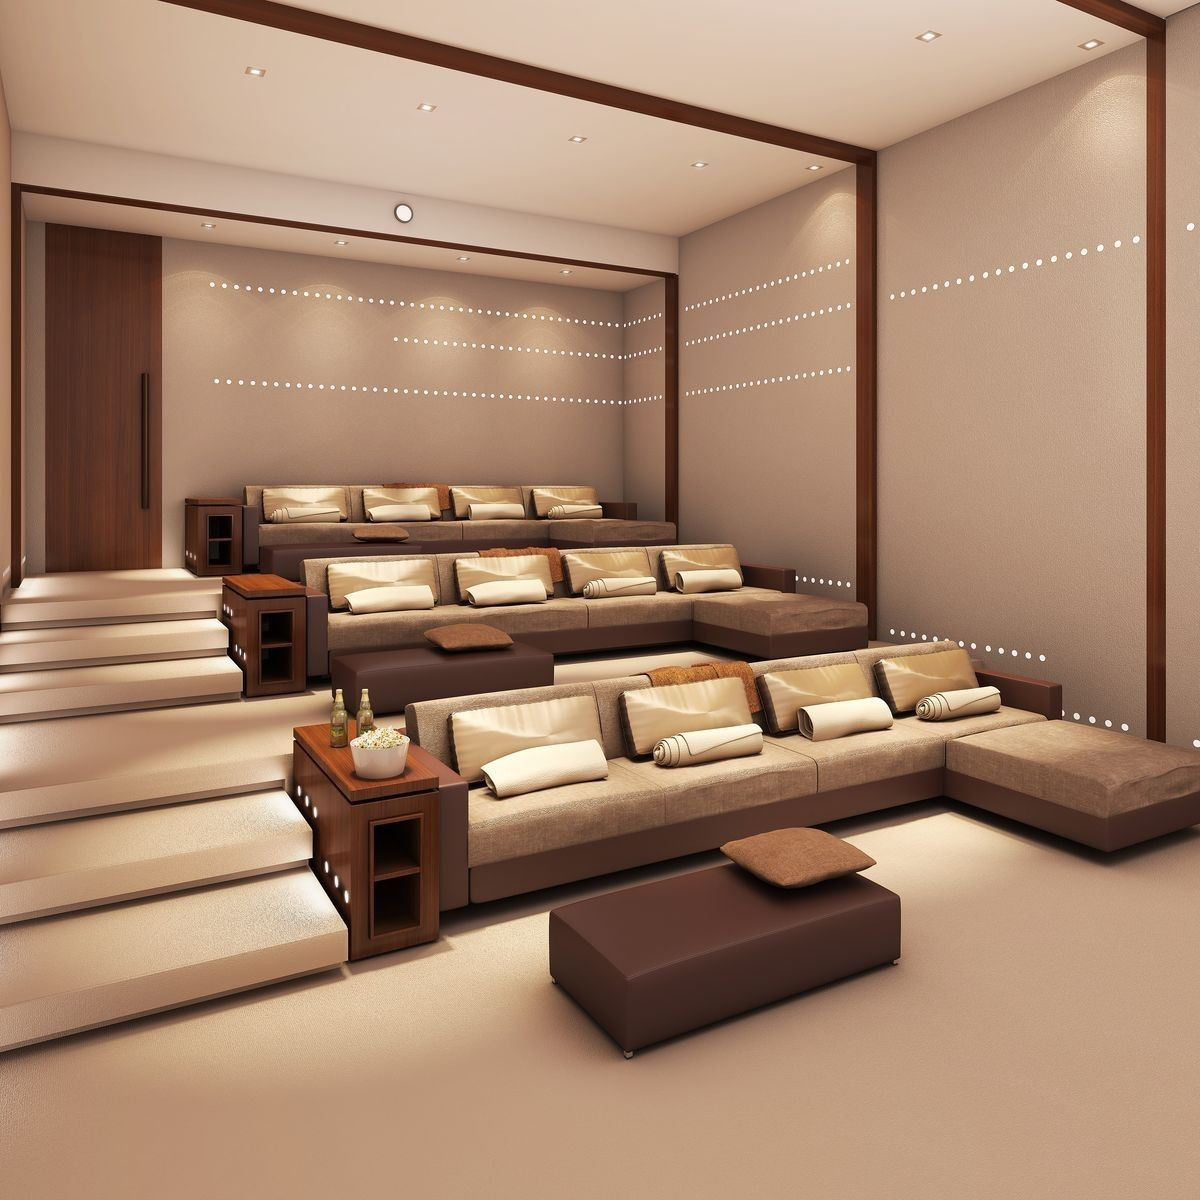 Pxpics Pxpics Web Site That Specializes In Pictures Cares About Good Images Of Furniture And Modern Private Rooms To Sleep Everyone Who Loves The Contemporar Home Theater Room Design Home